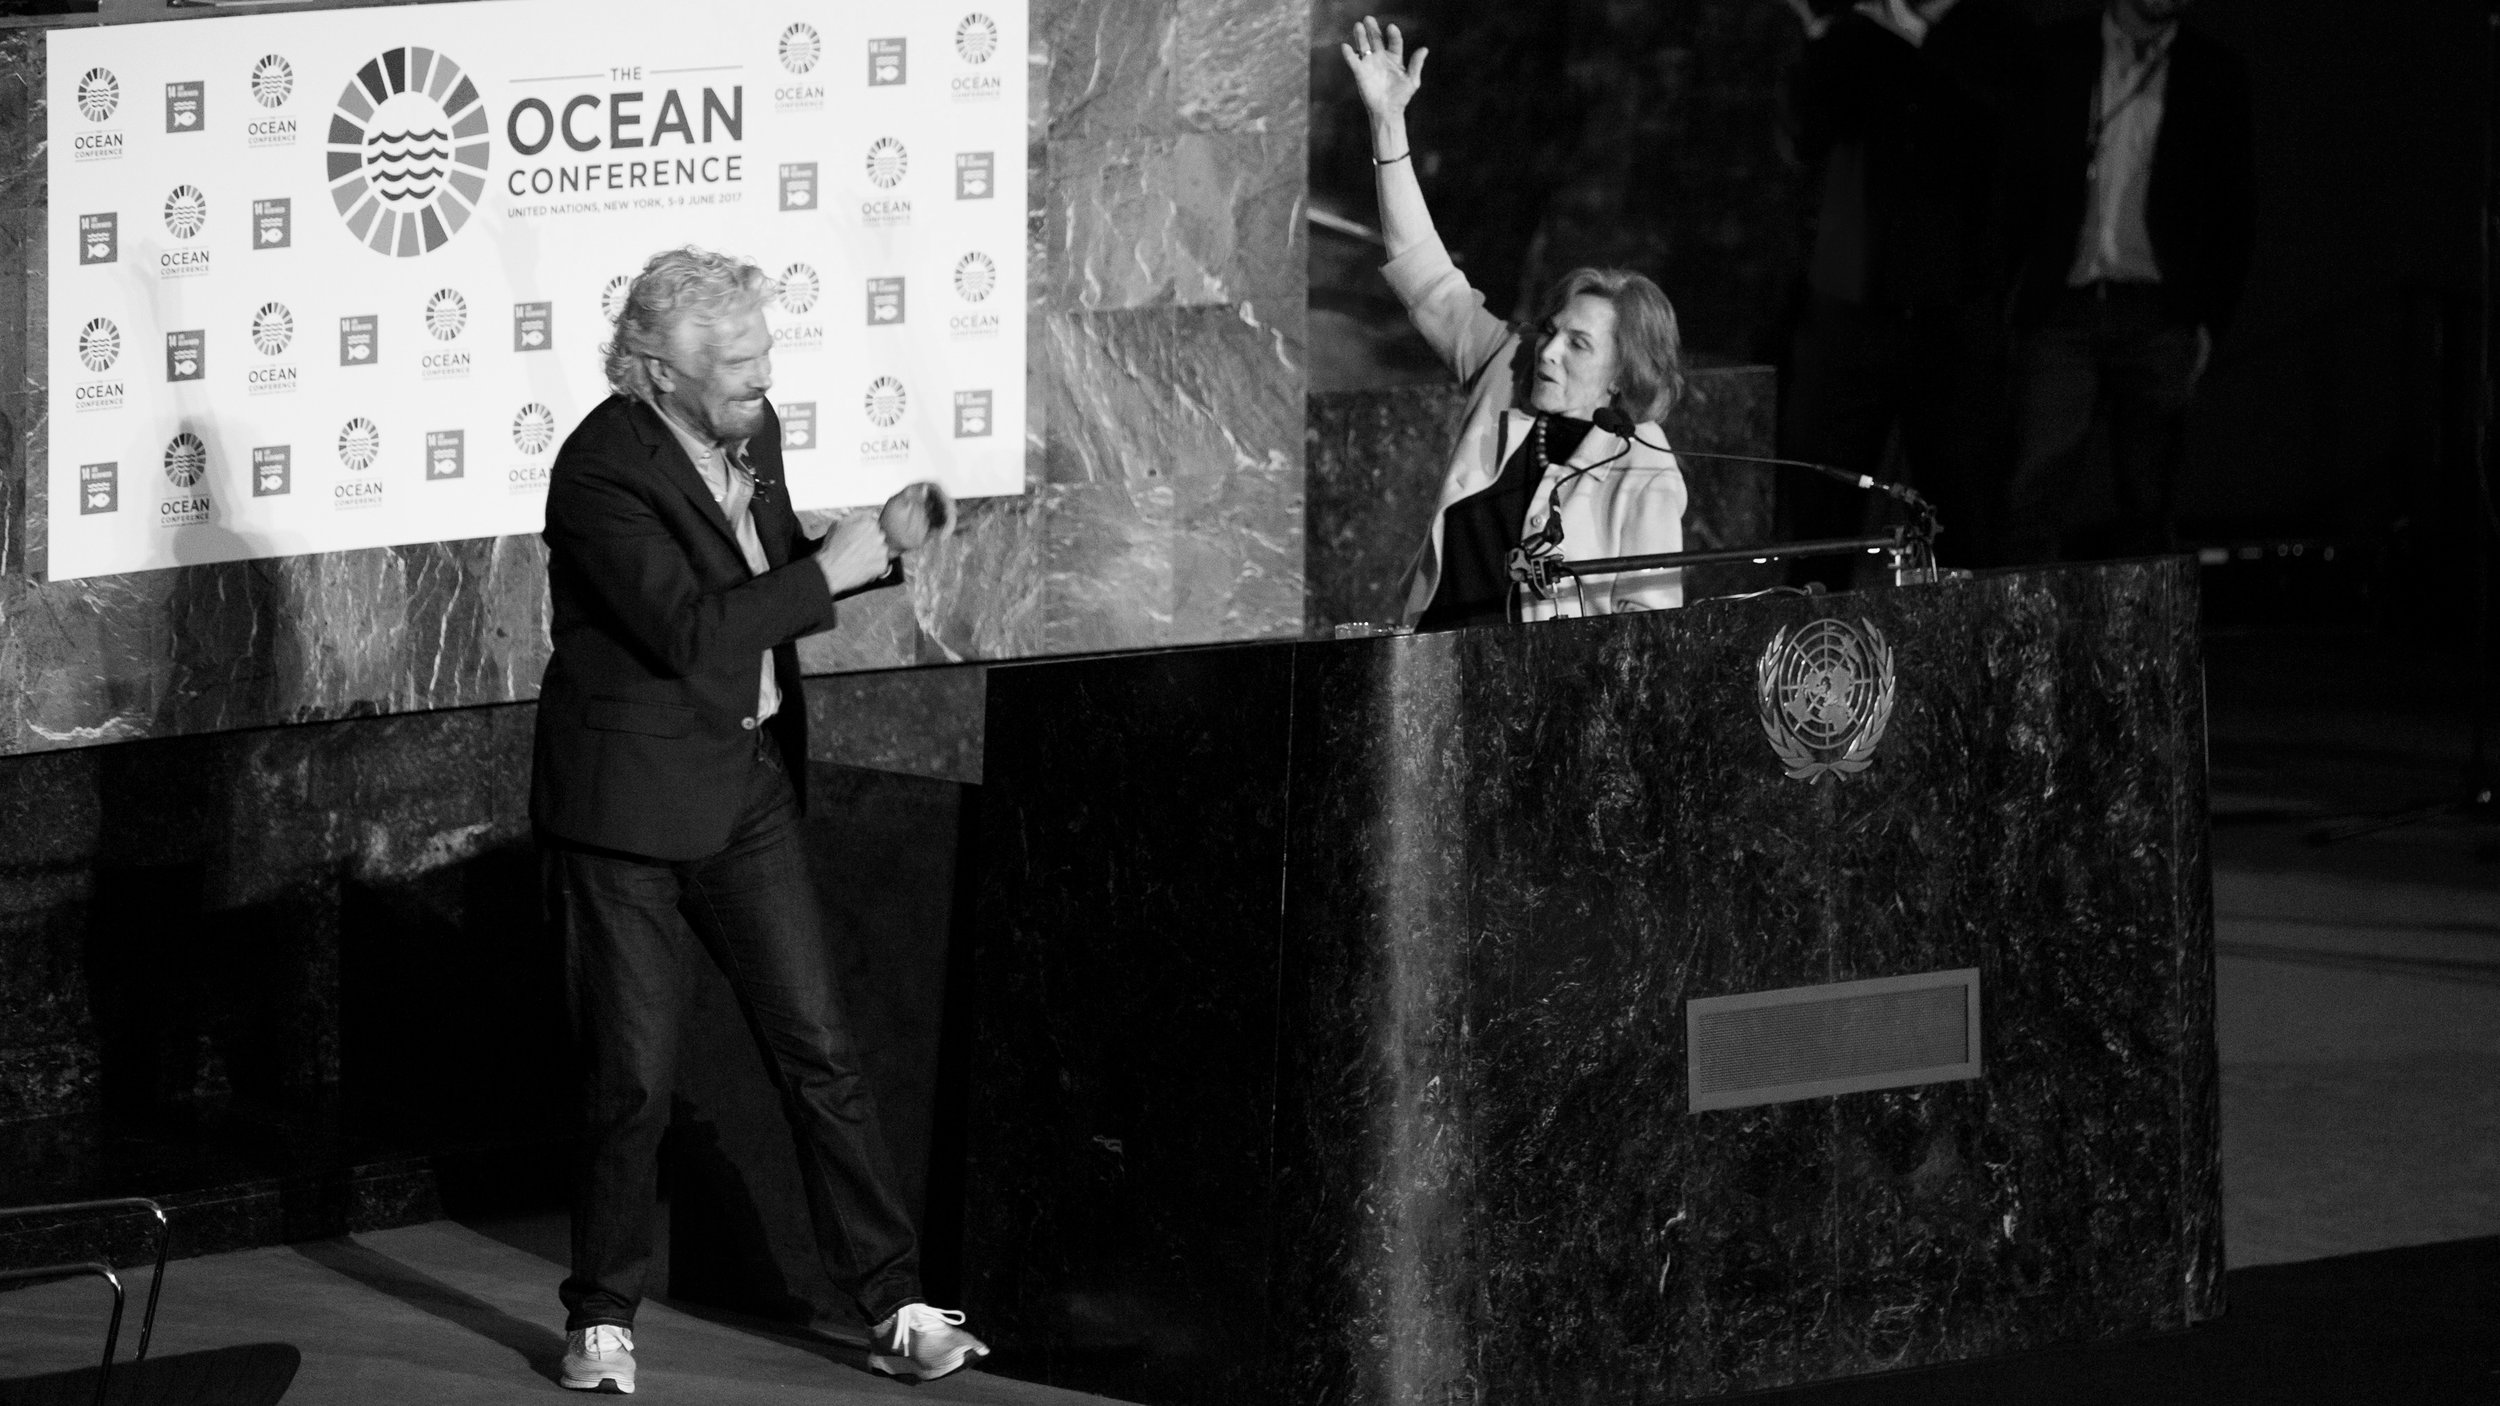 Richard Branson in adidas Parley shoes, Dr. Sylvia Earle